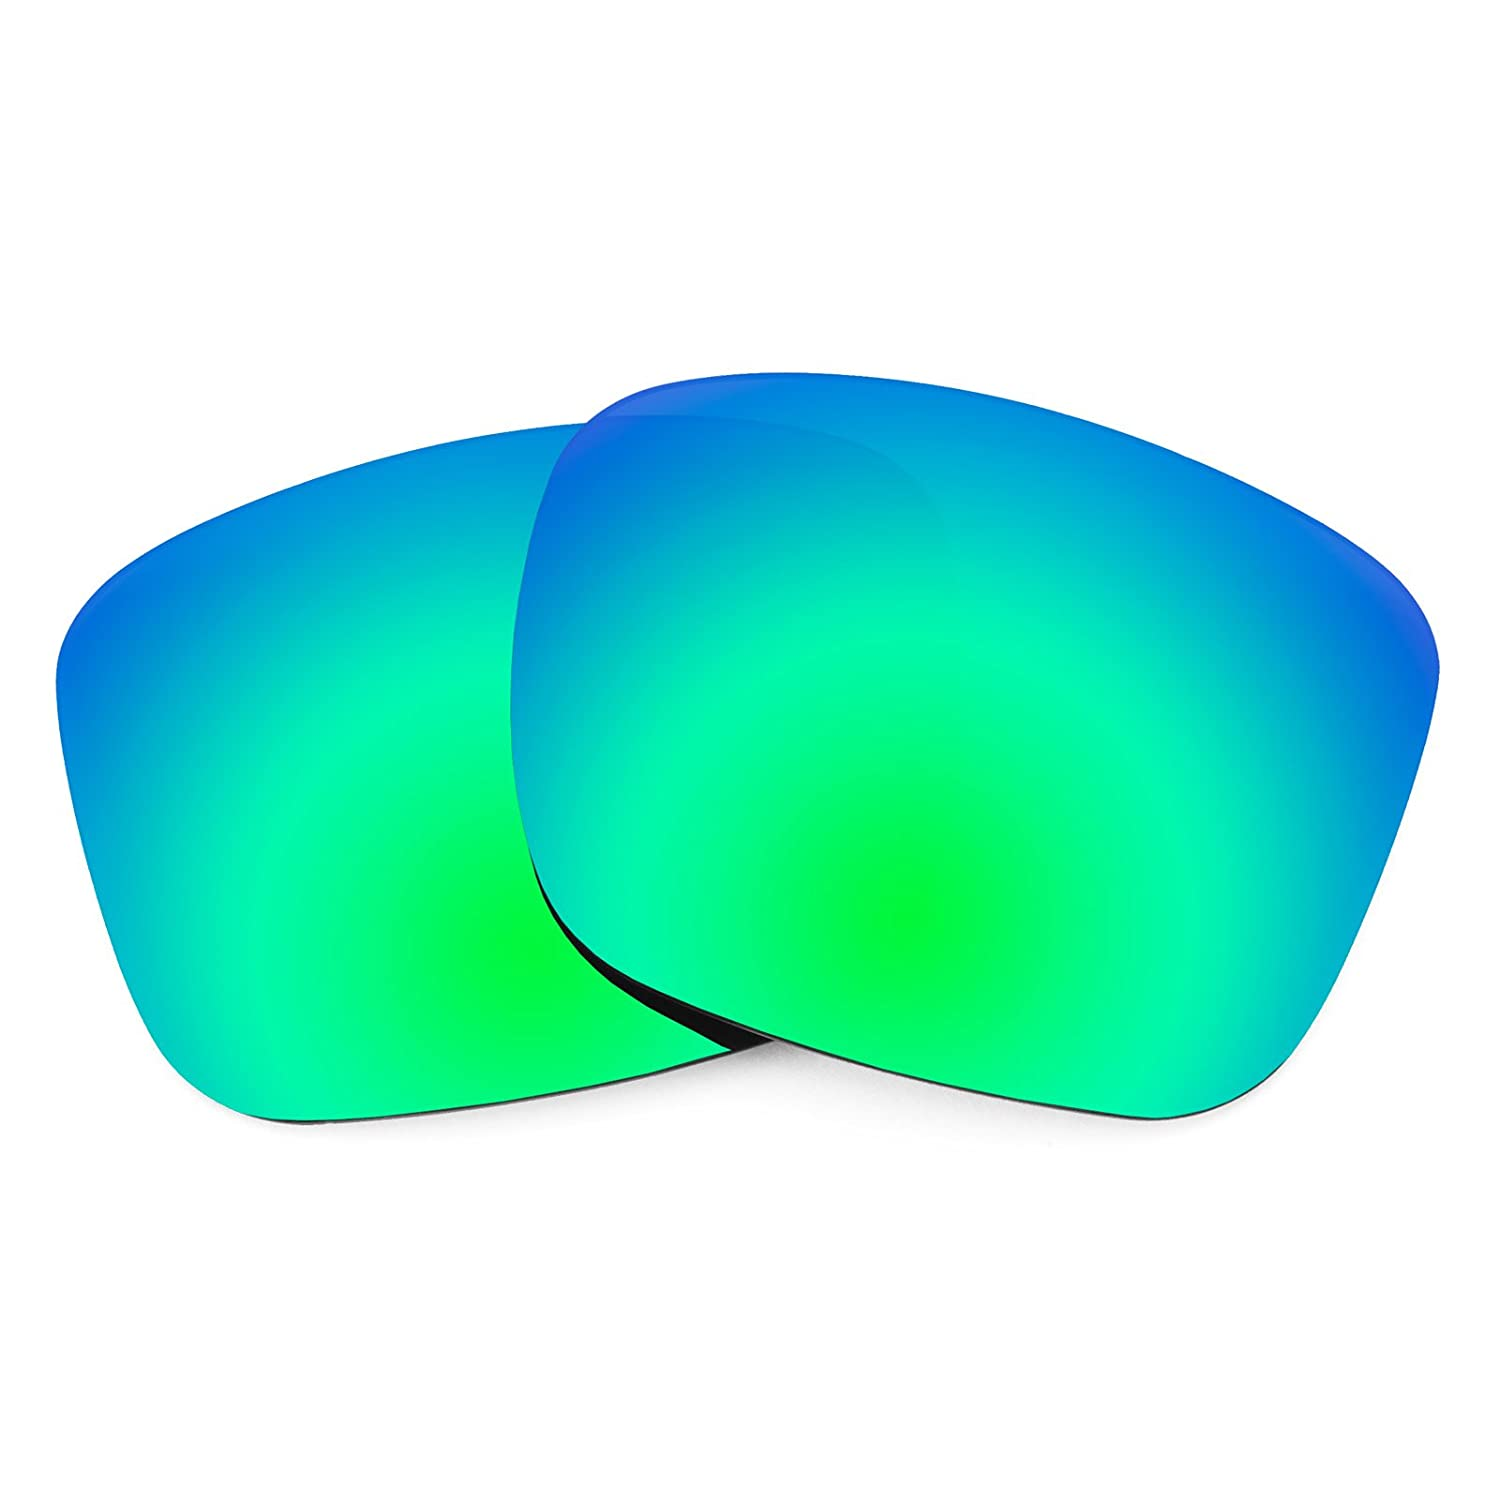 566b6df355a Revant Polarized Replacement Lenses for Spy Optic Discord Emerald Green  MirrorShield®  Amazon.ca  Sports   Outdoors